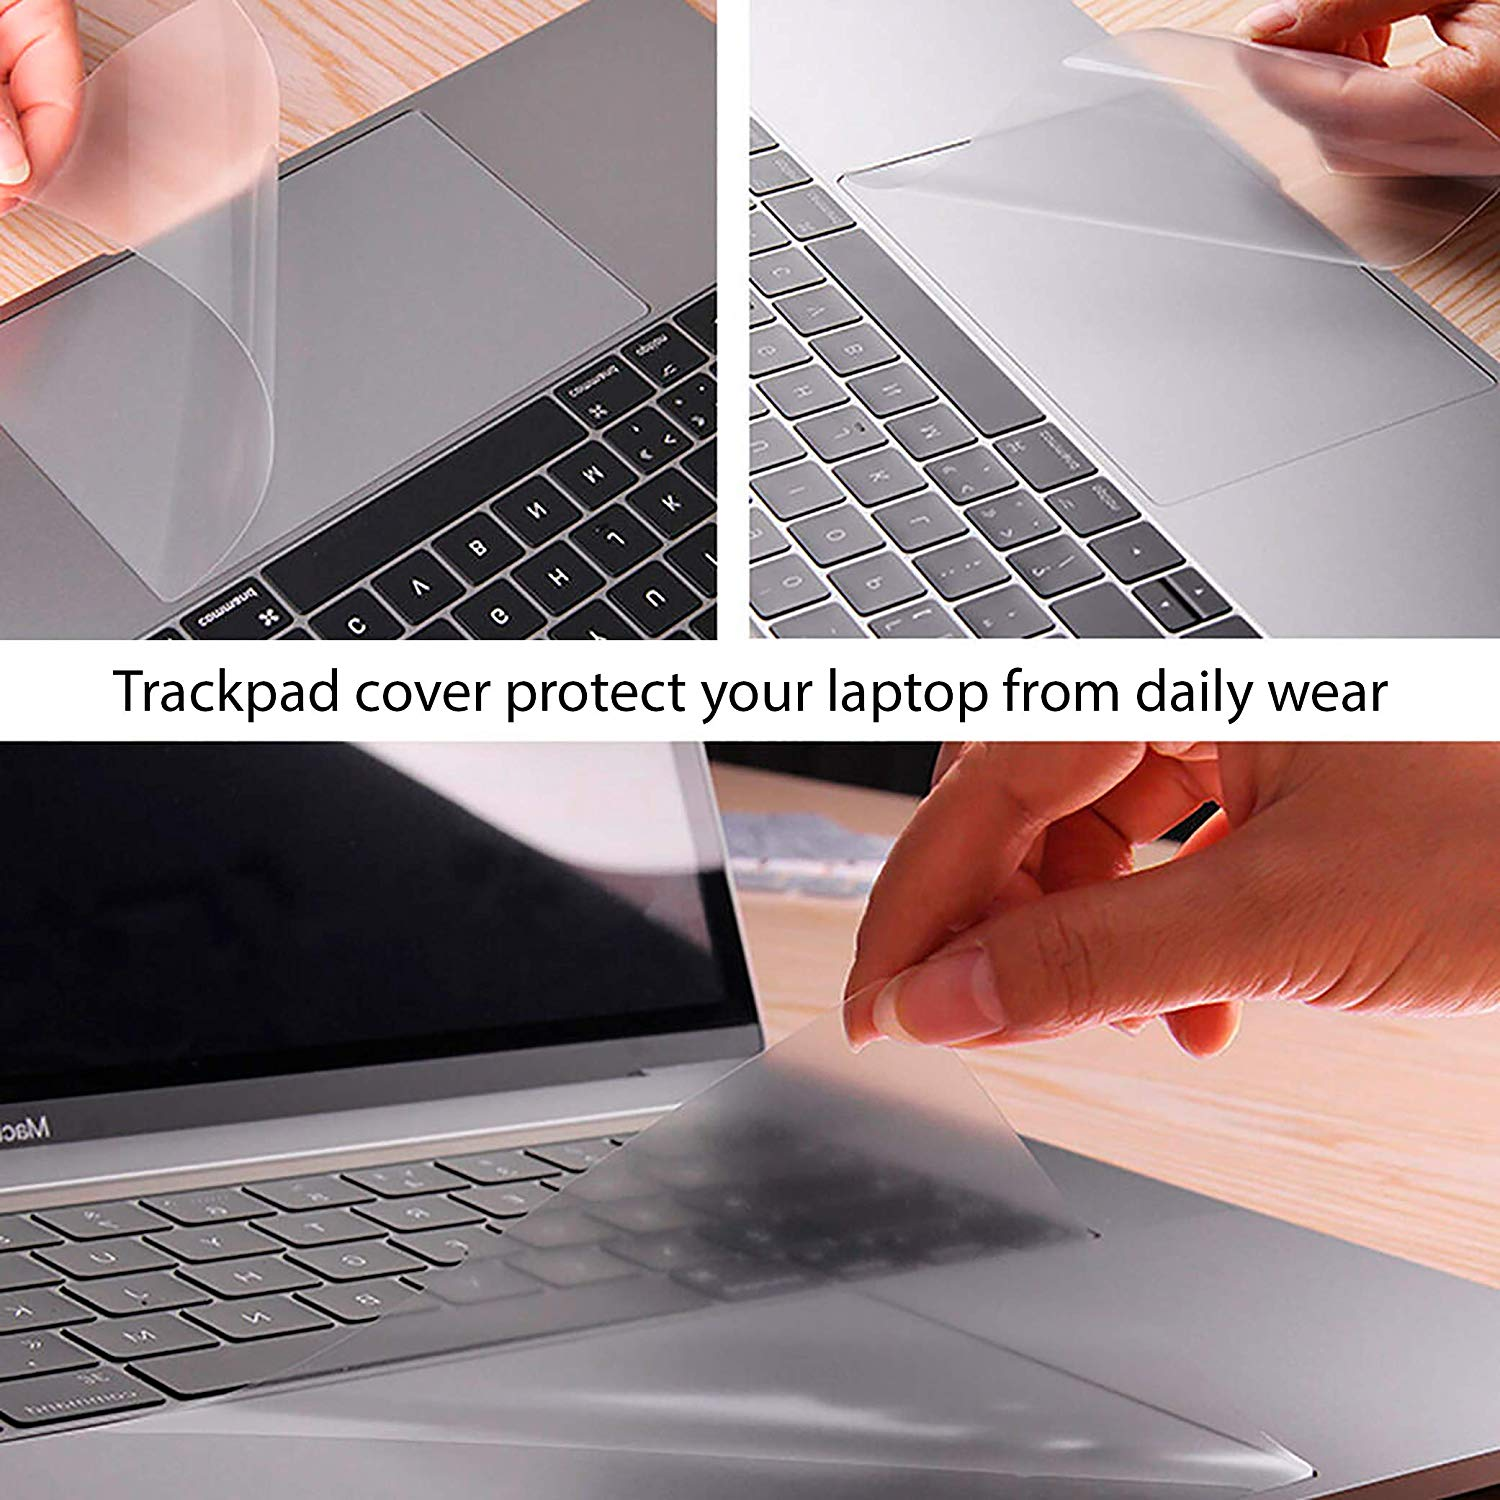 trackpad cover